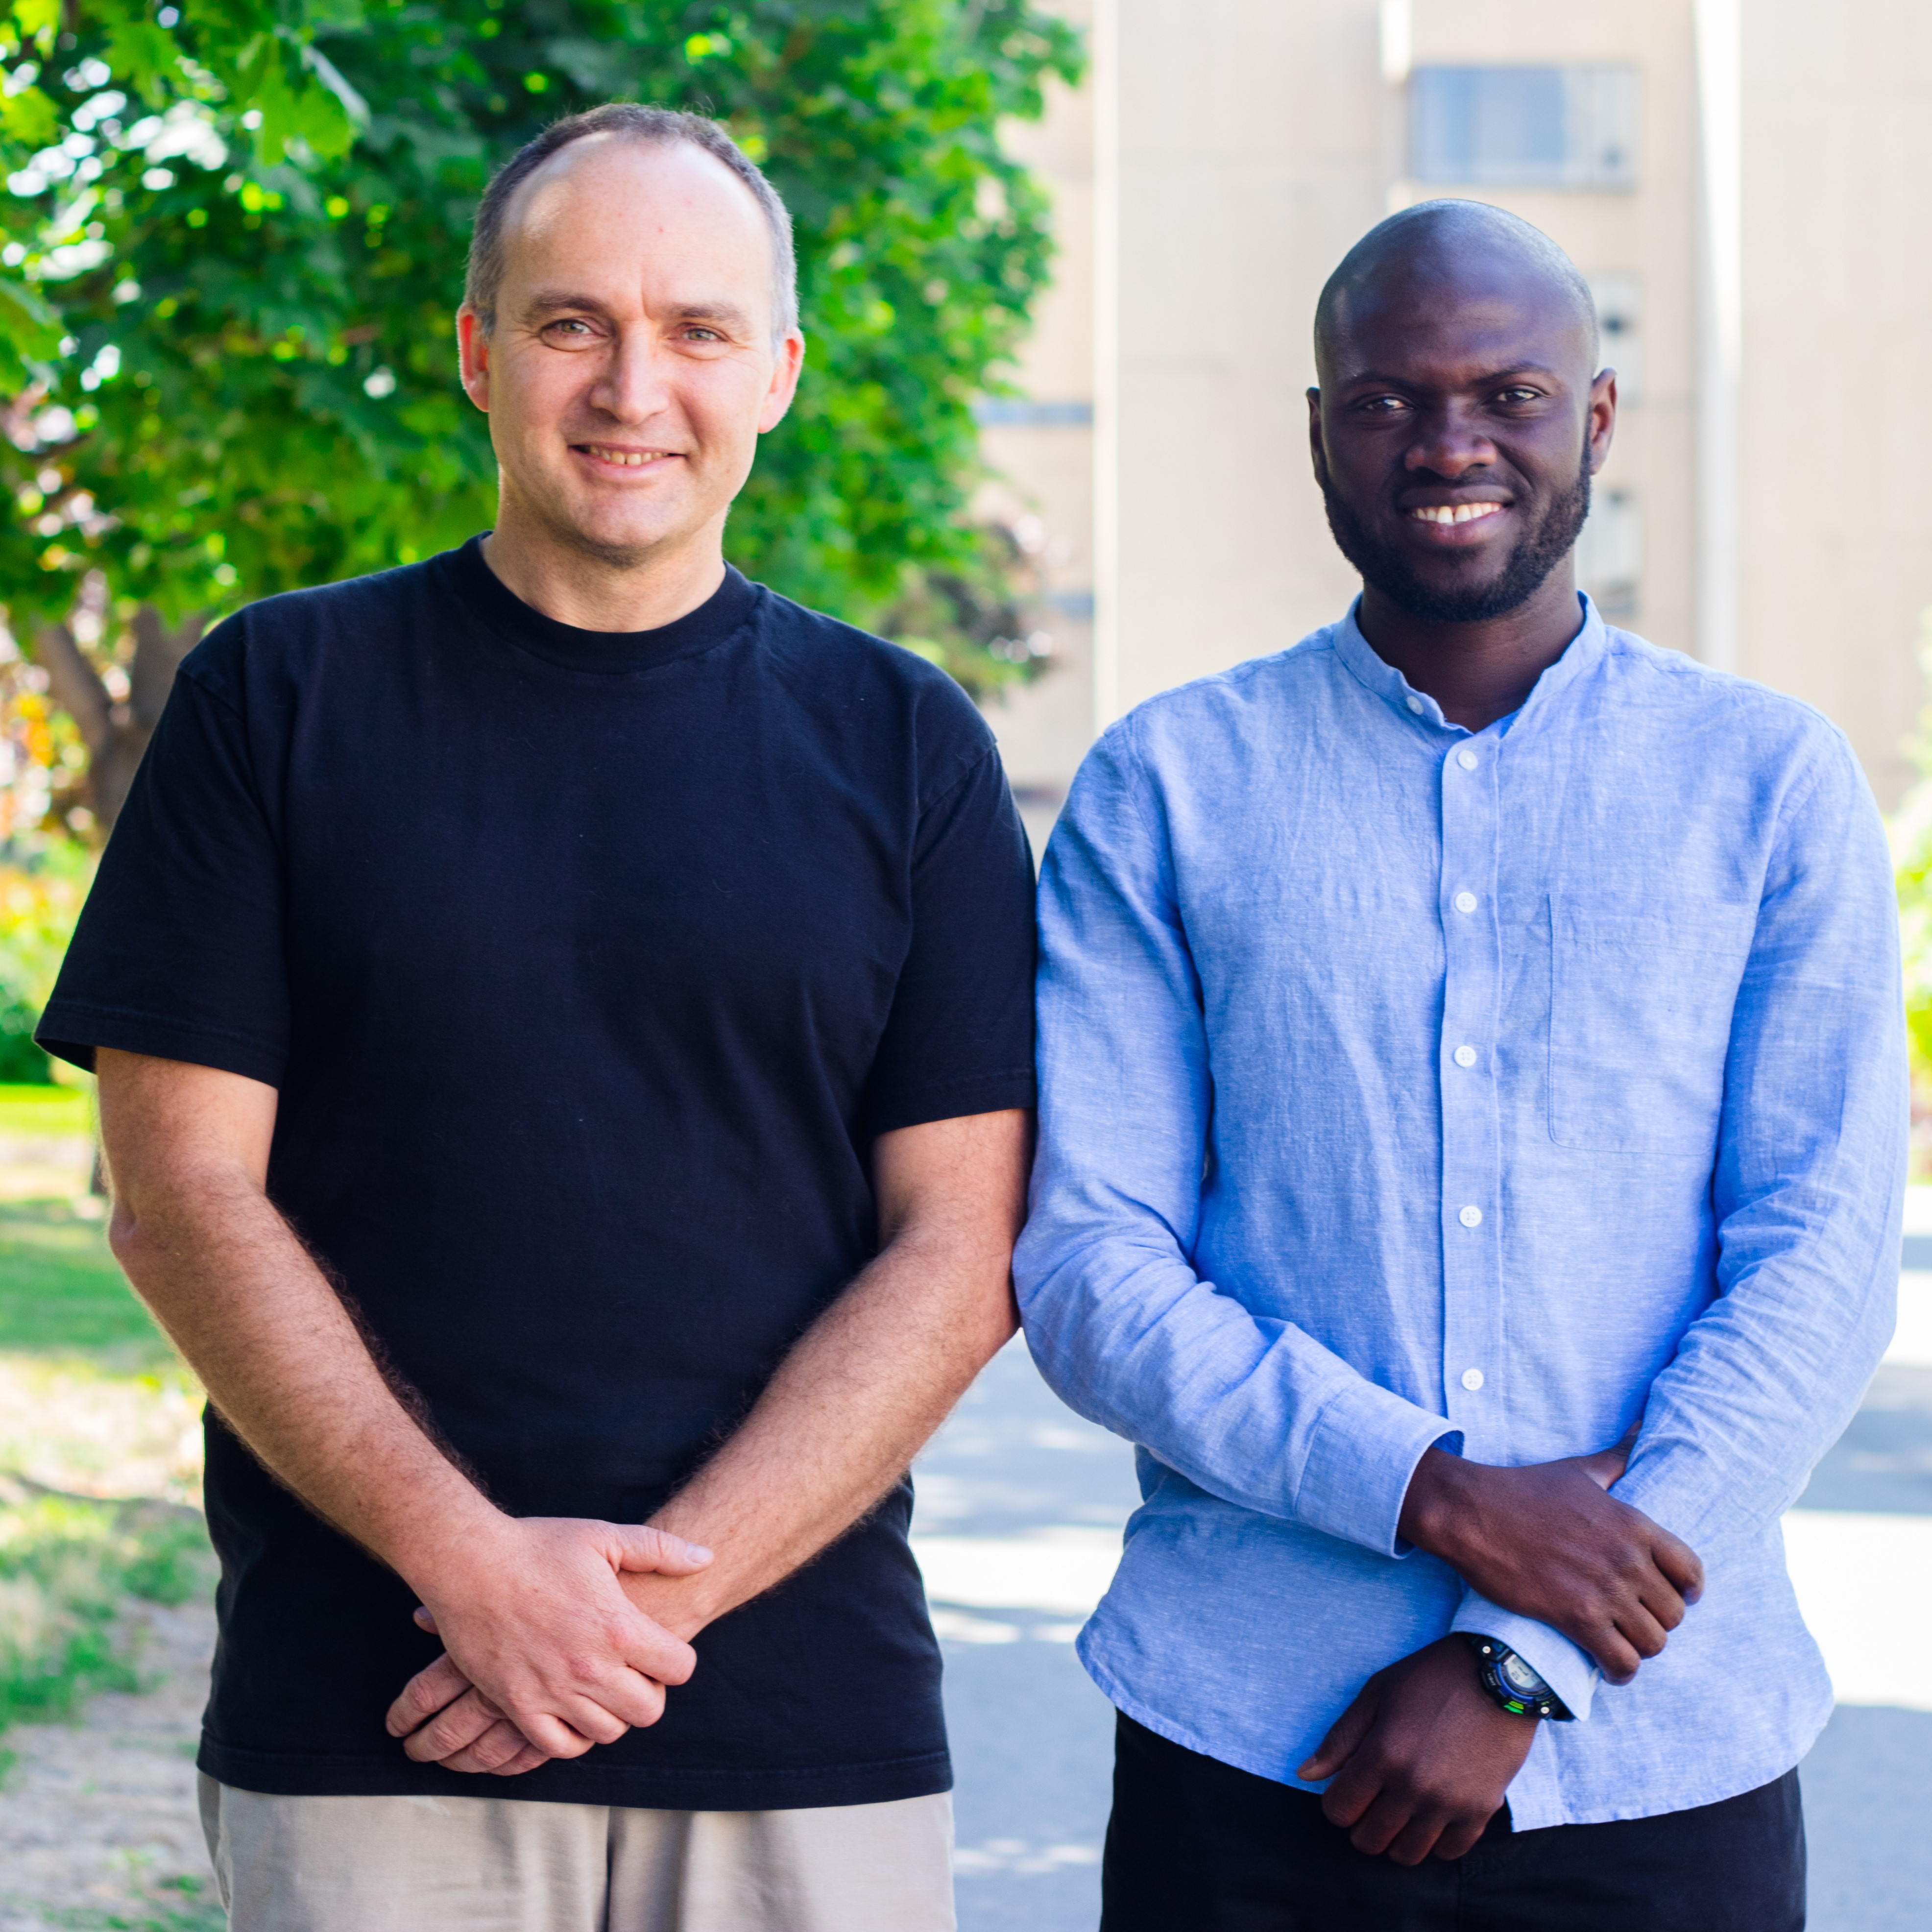 Professor Rafal Kulik (left) and his PhD student Yousouph Cissokho (right) are standing outdoors, on uOttawa campus. There are trees behind them.